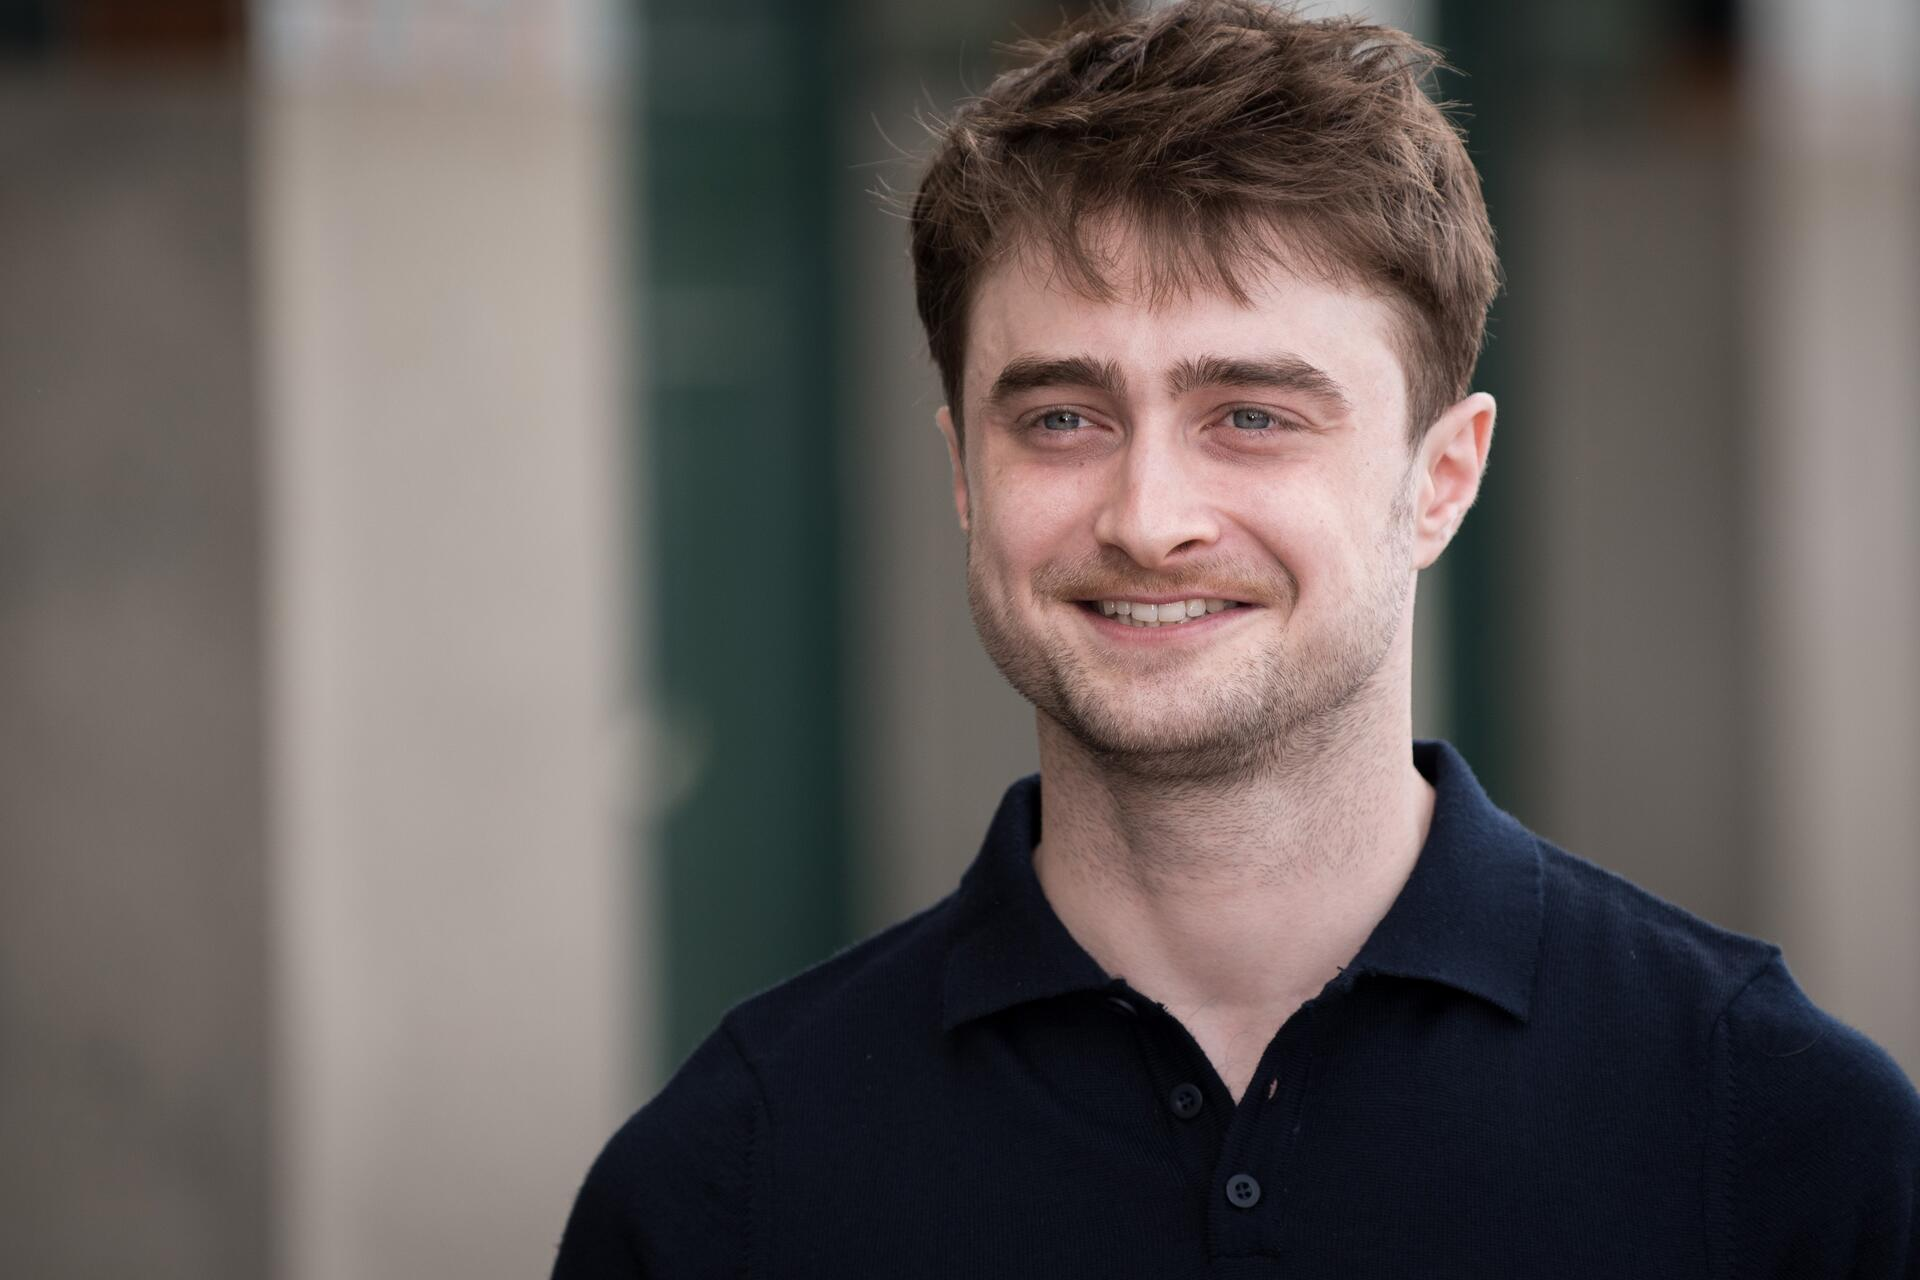 Bild zu Daniel Radcliffe, Game of Thrones, Serientod